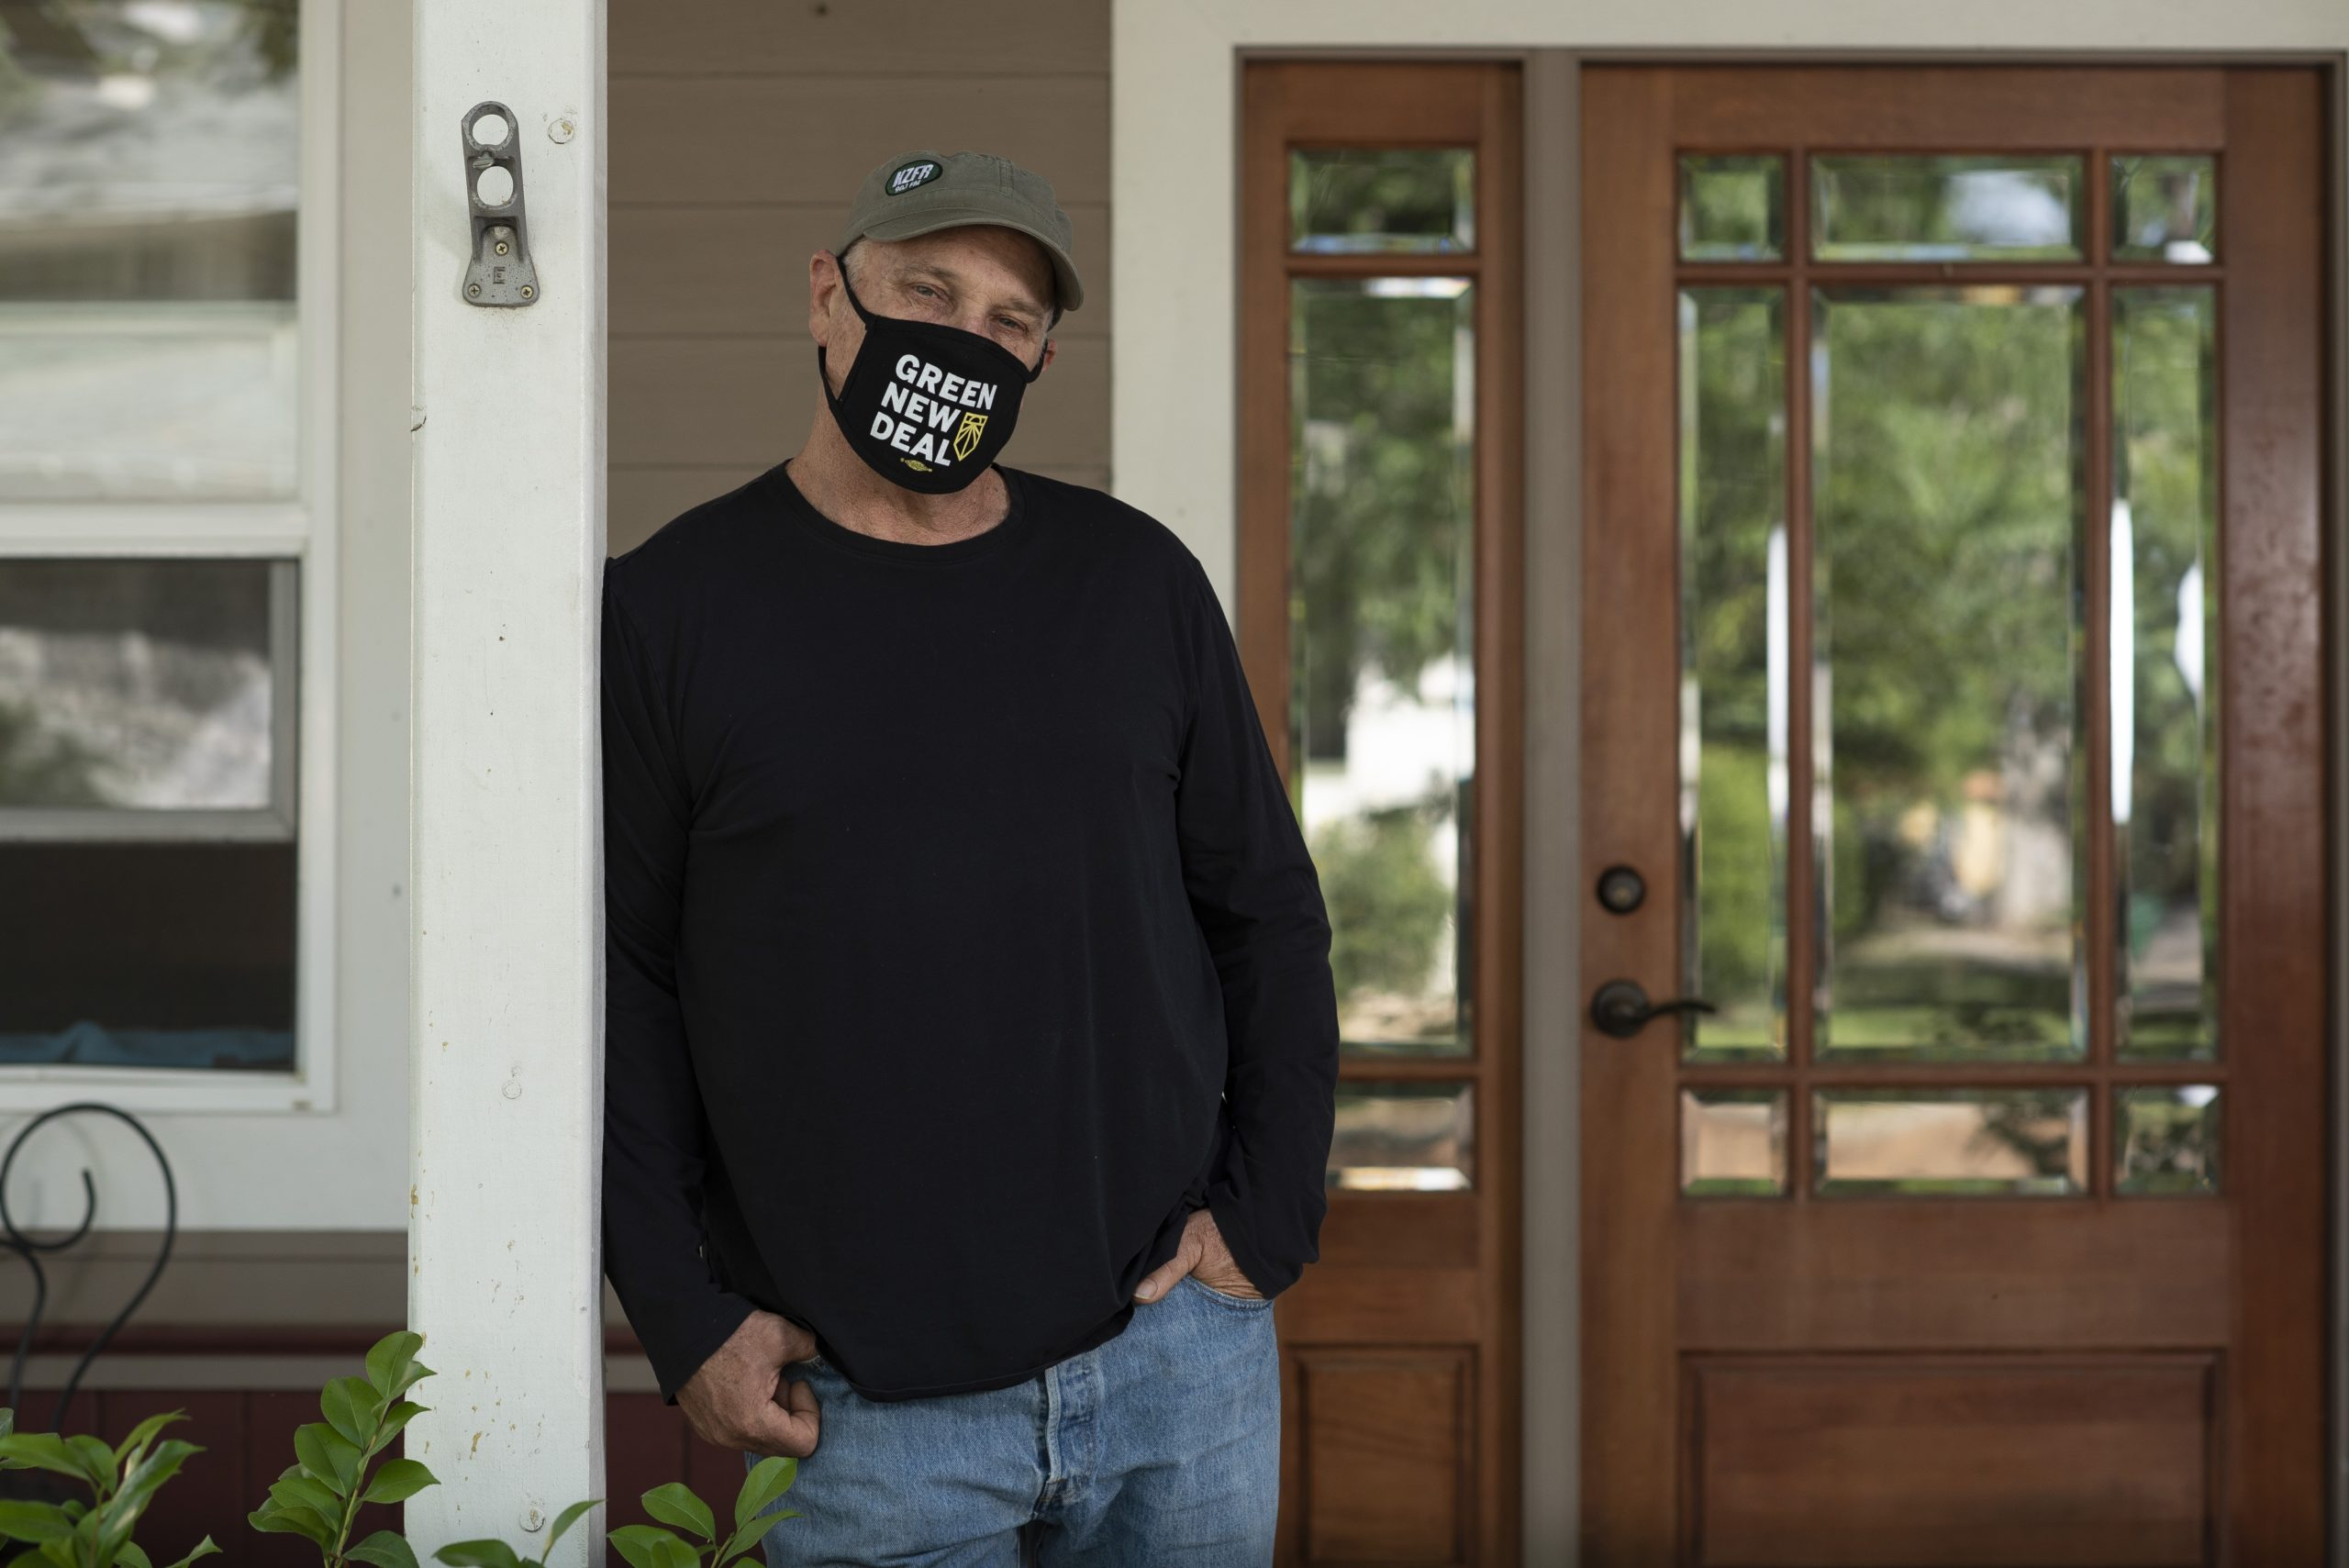 Mark Stemen, a professor of enviornmental studies at California State University, Chico, poses for a portrait outside his home in Chico, Calif. on Tuesday May 4, 2021. Salgu Wissmath for The Intercept